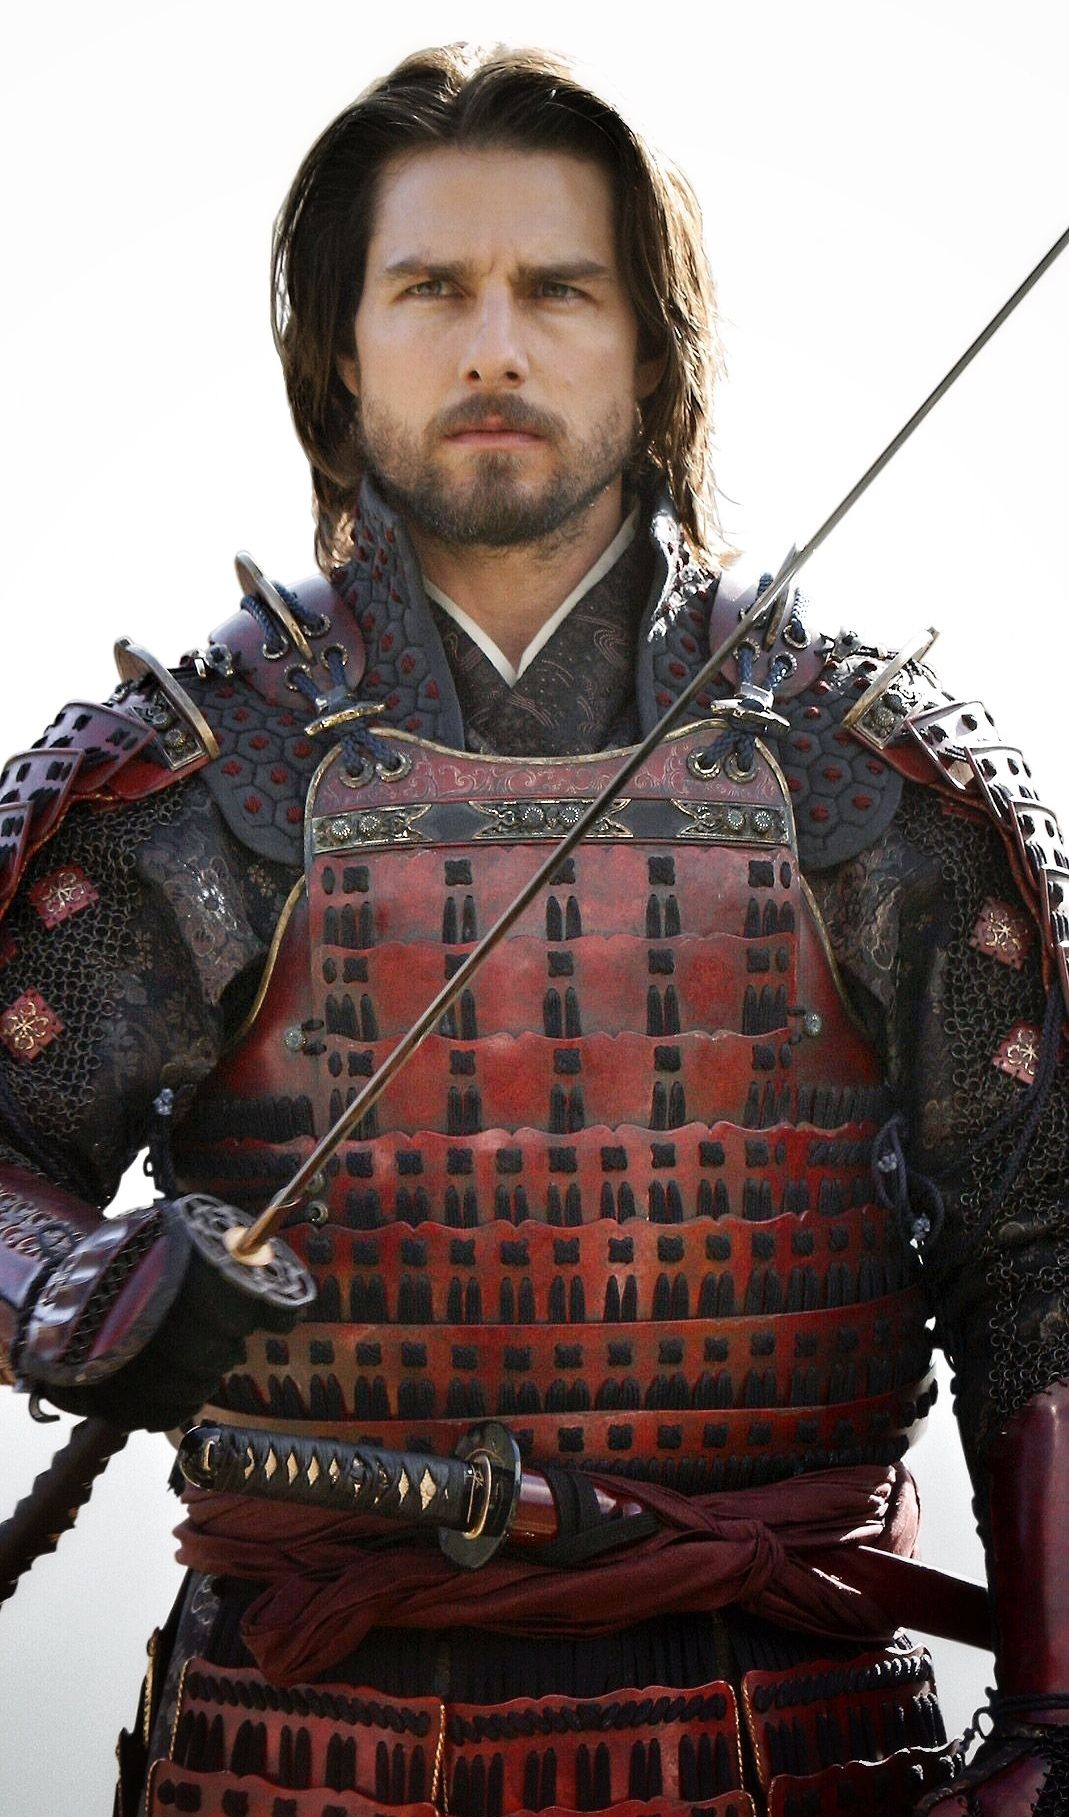 The Last Samurai 2003 the detail on the armor for a